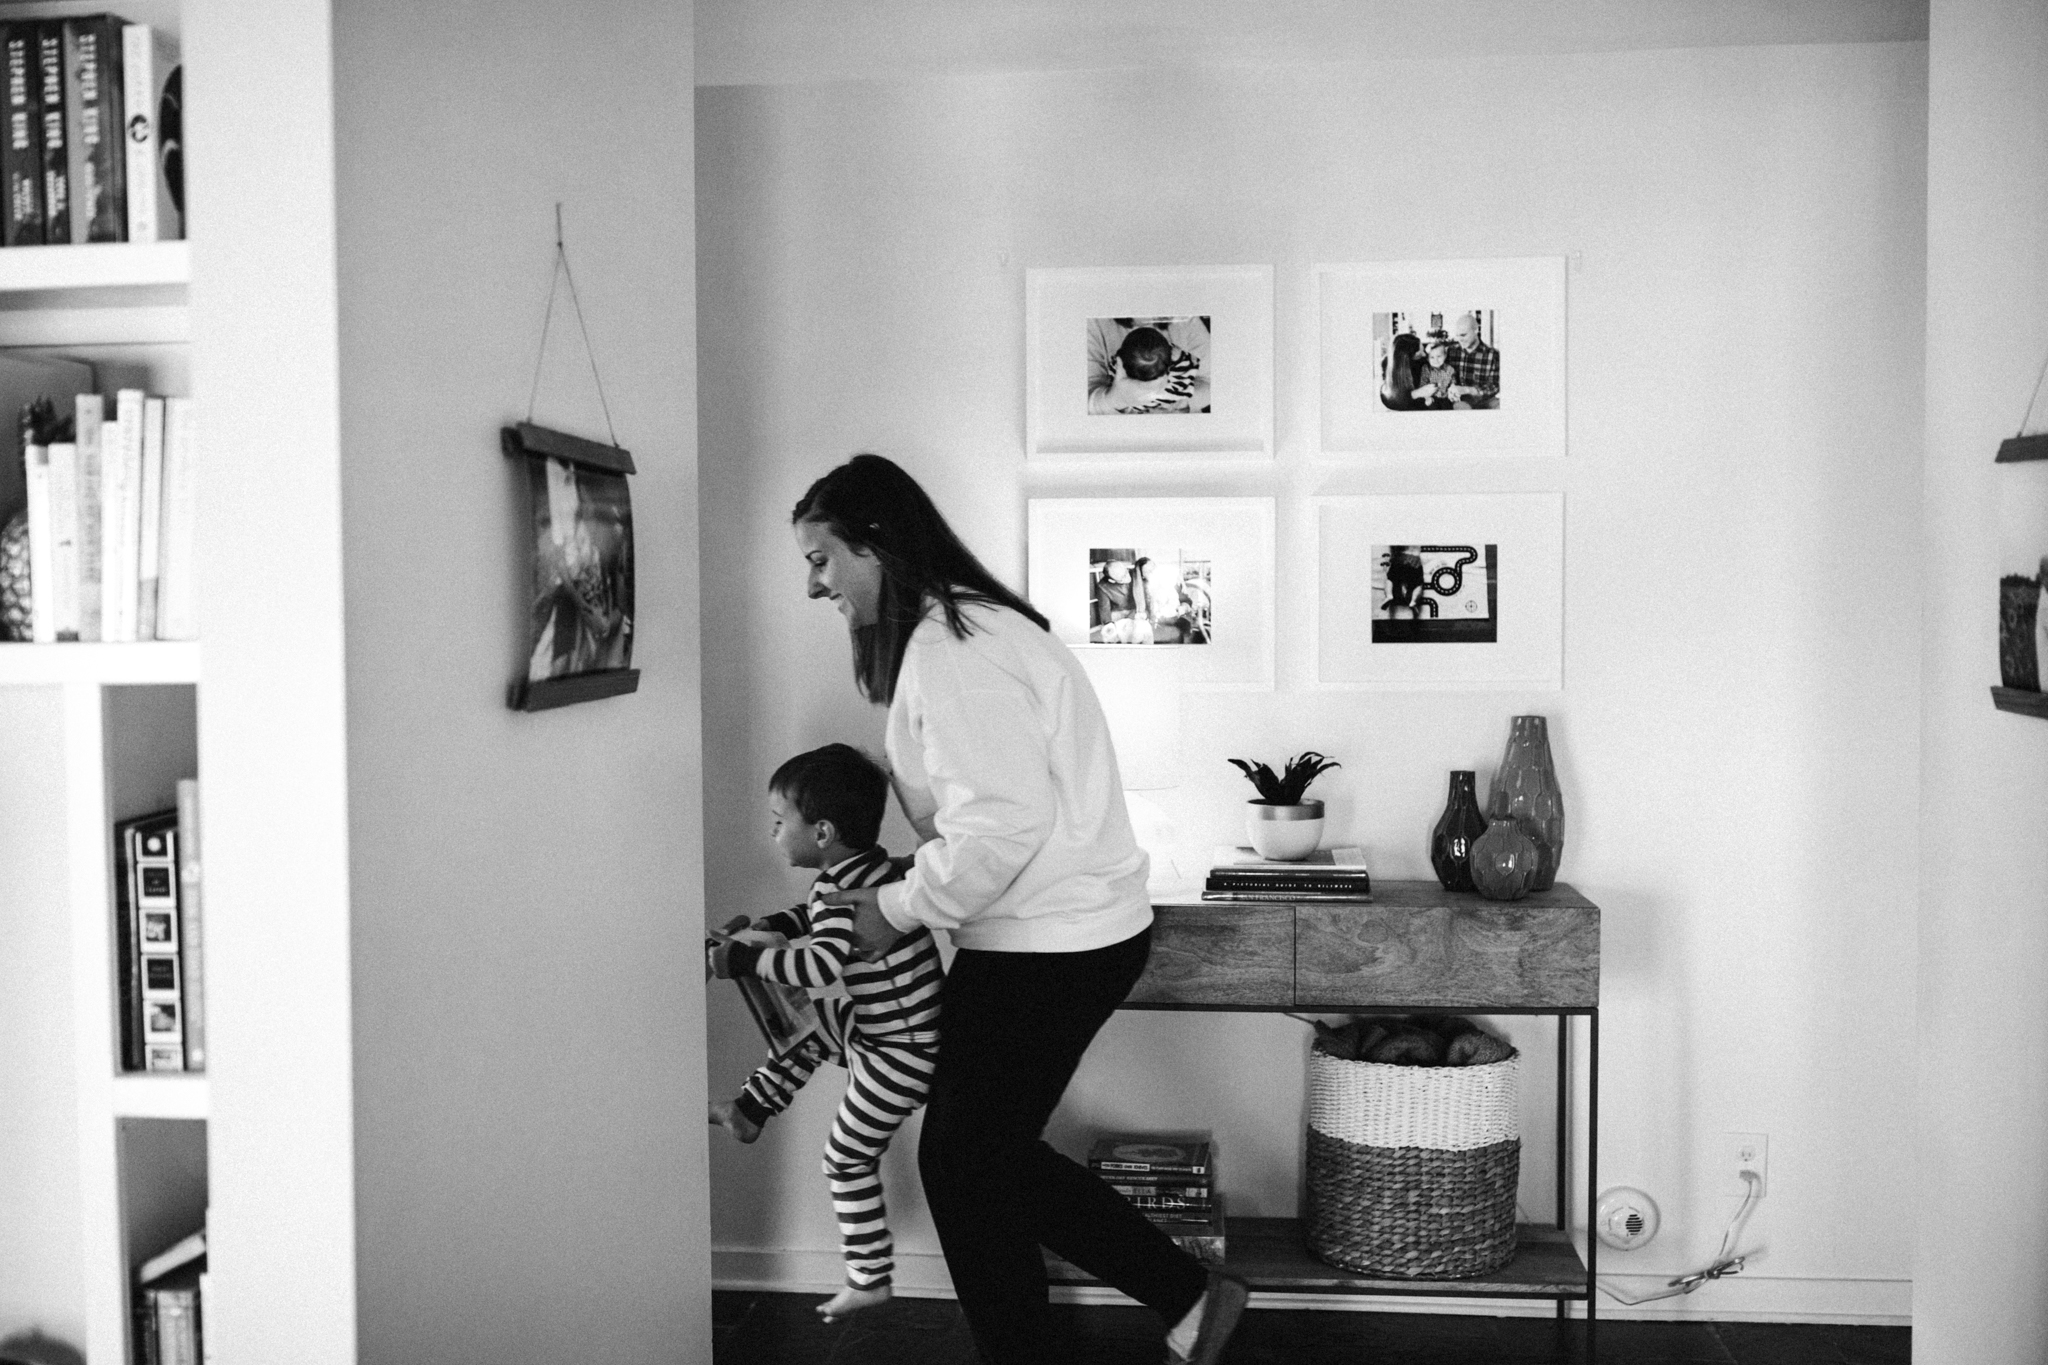 memphis-family-photographer-in-home-thewarmtharoundyou (121 of 140).jpg